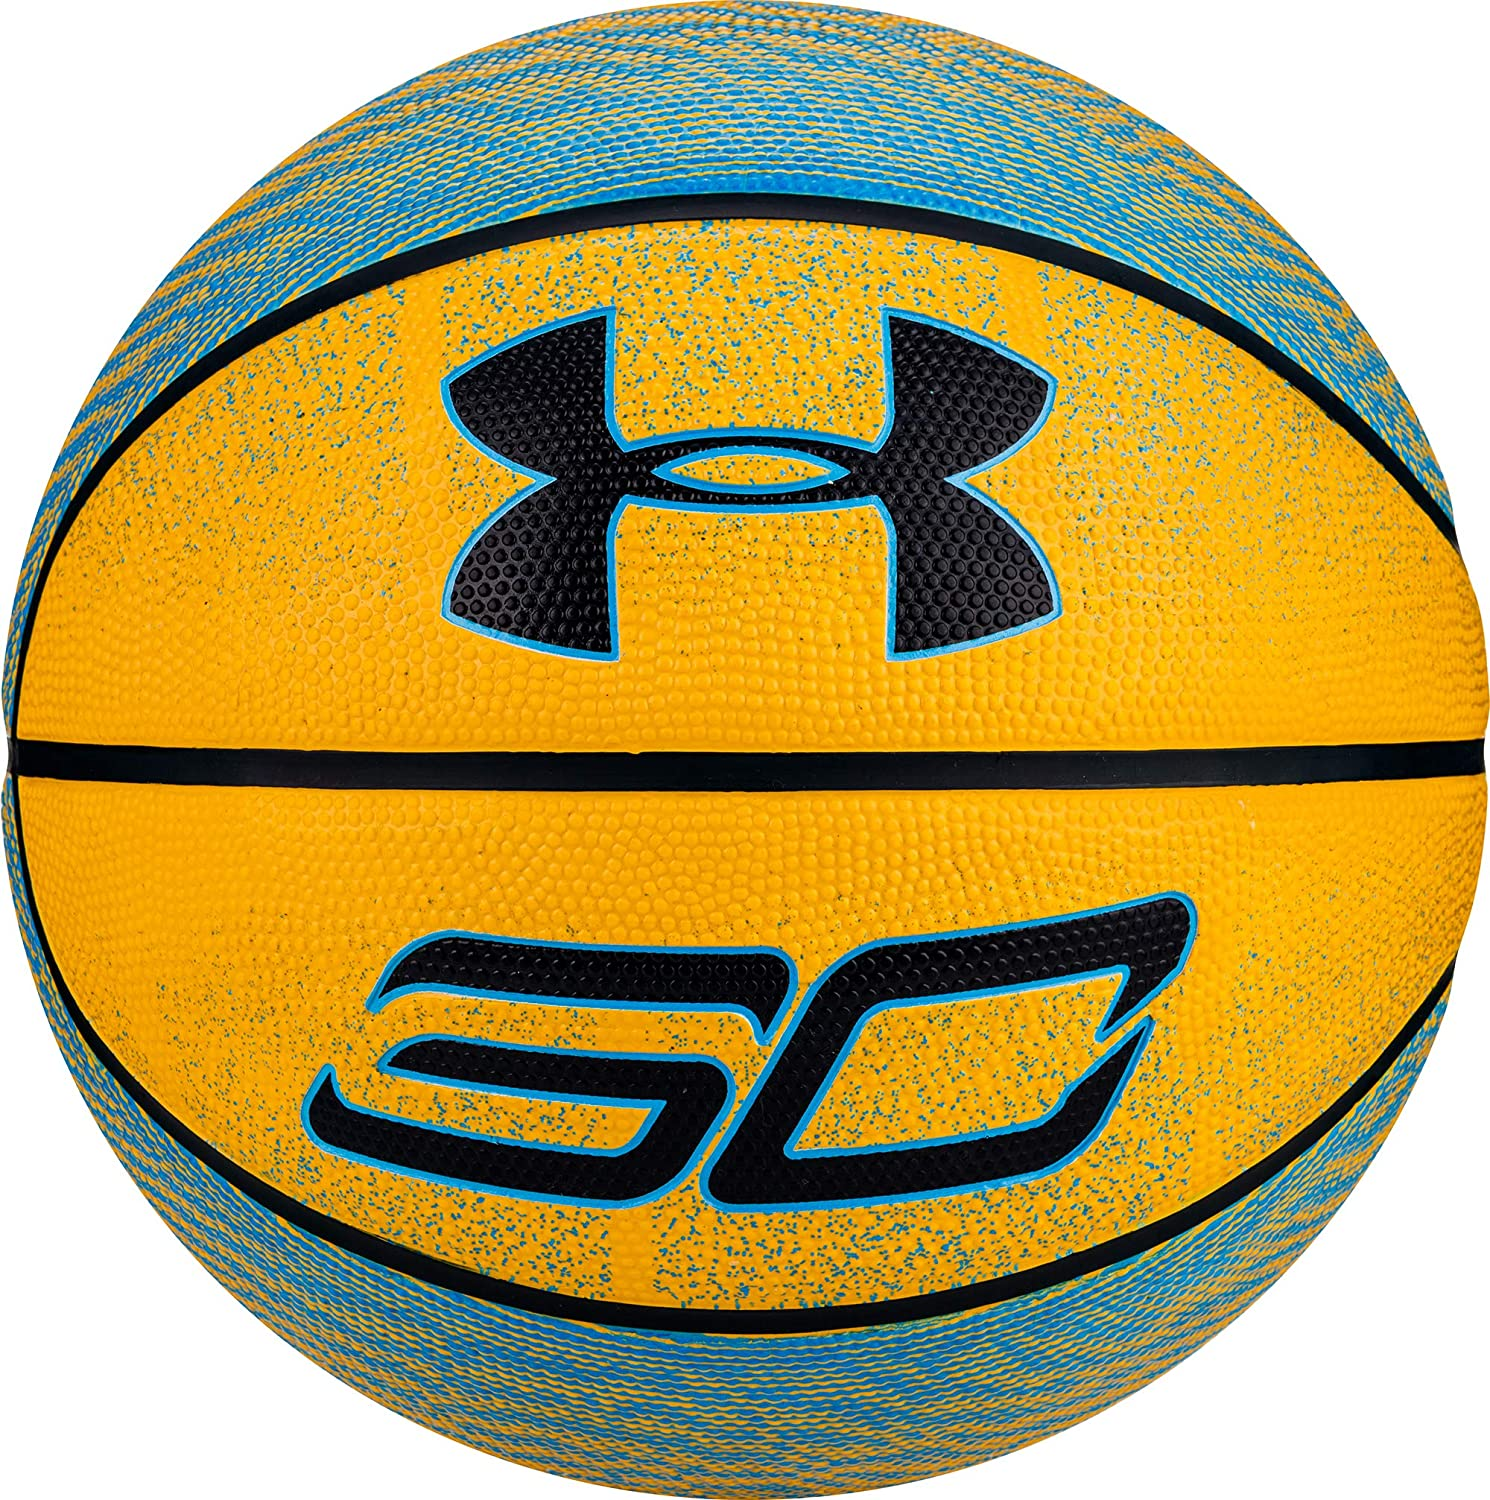 Best Basketballs To Buy: Spalding, Wilson or Under Armour?